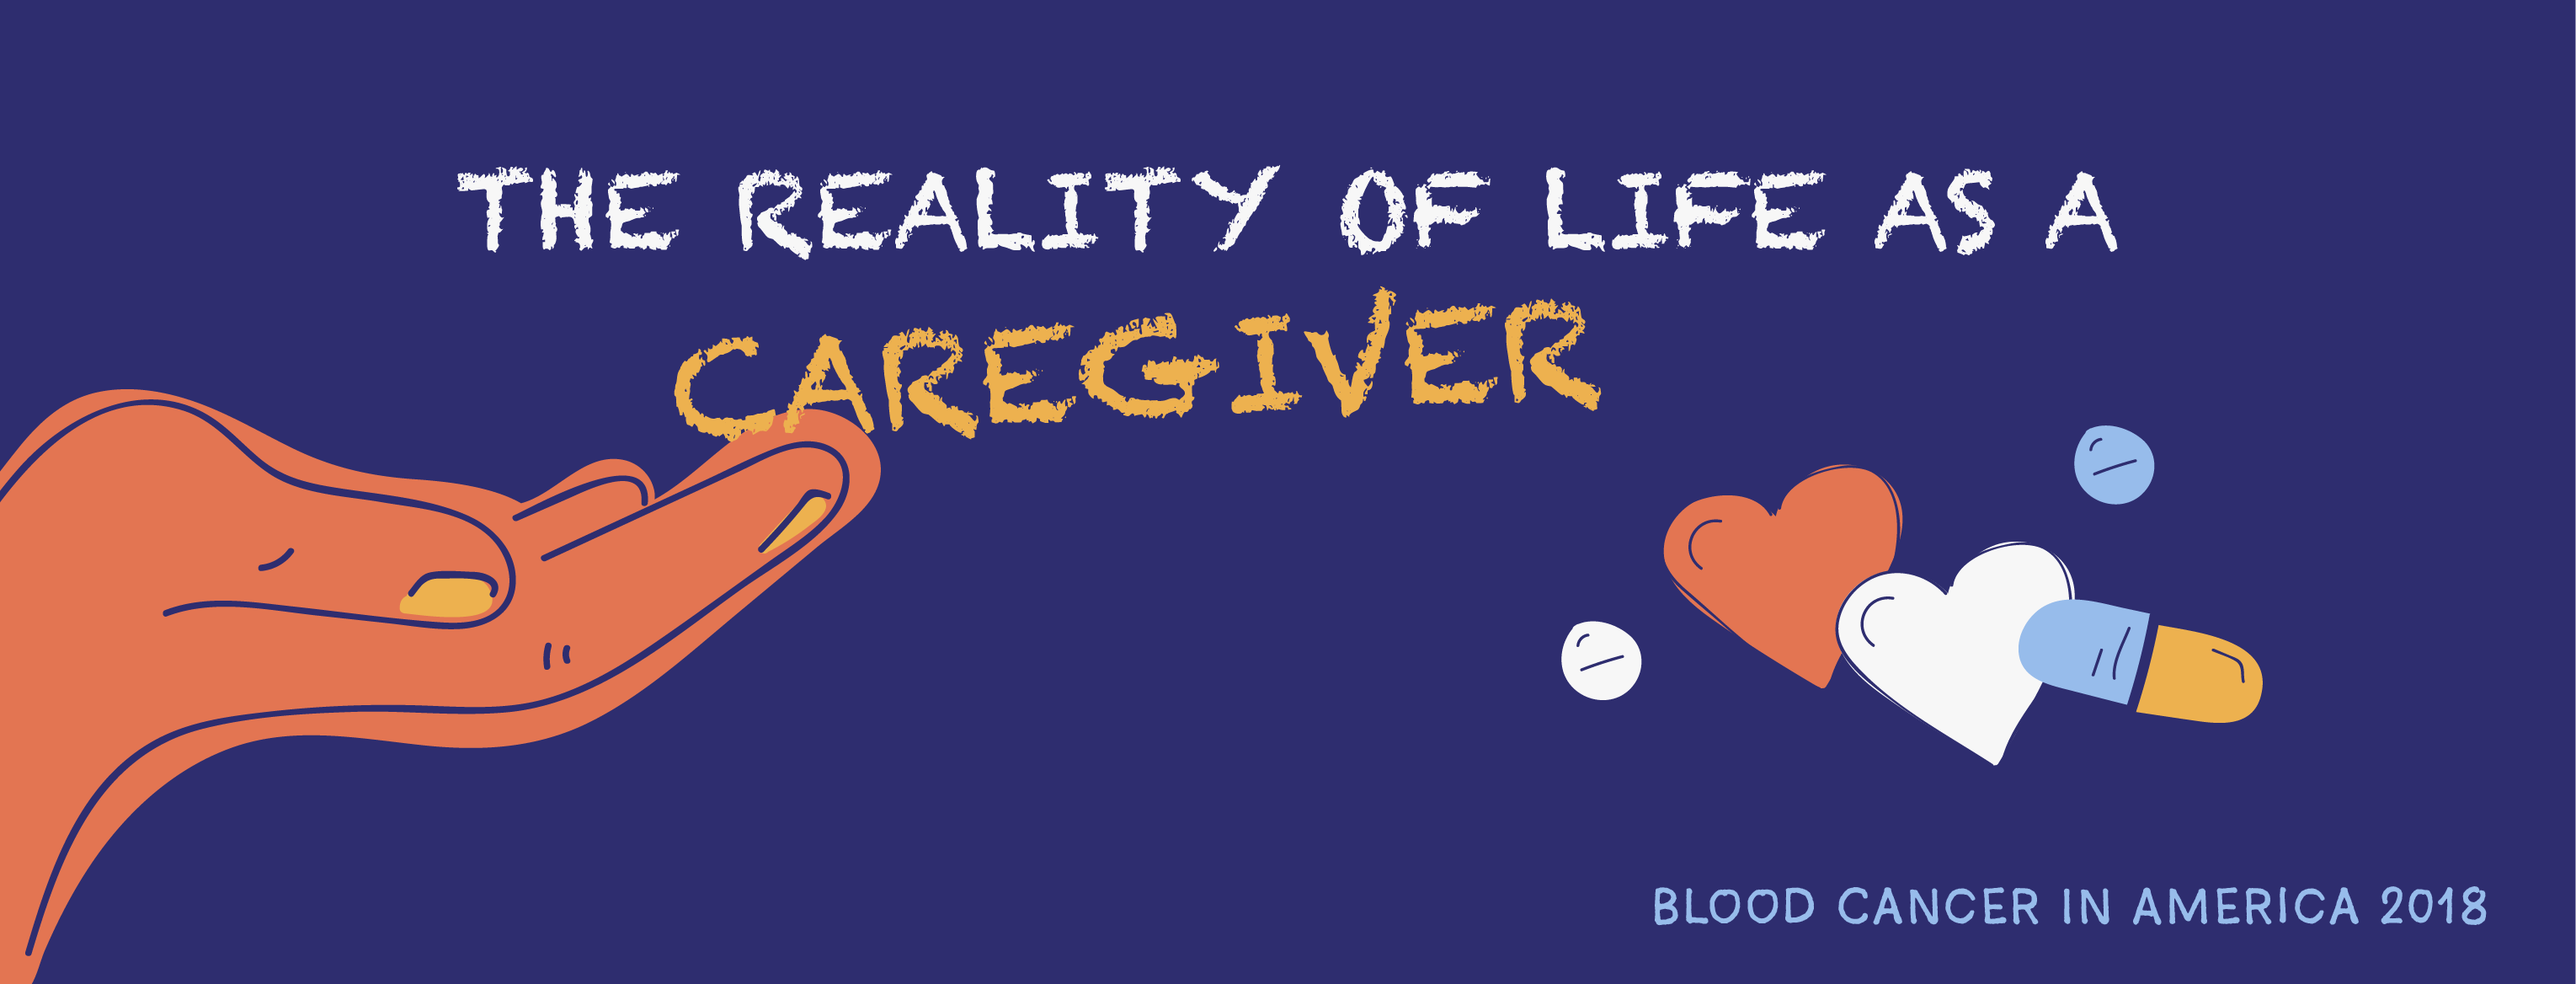 The Reality of Life as a Caregiver